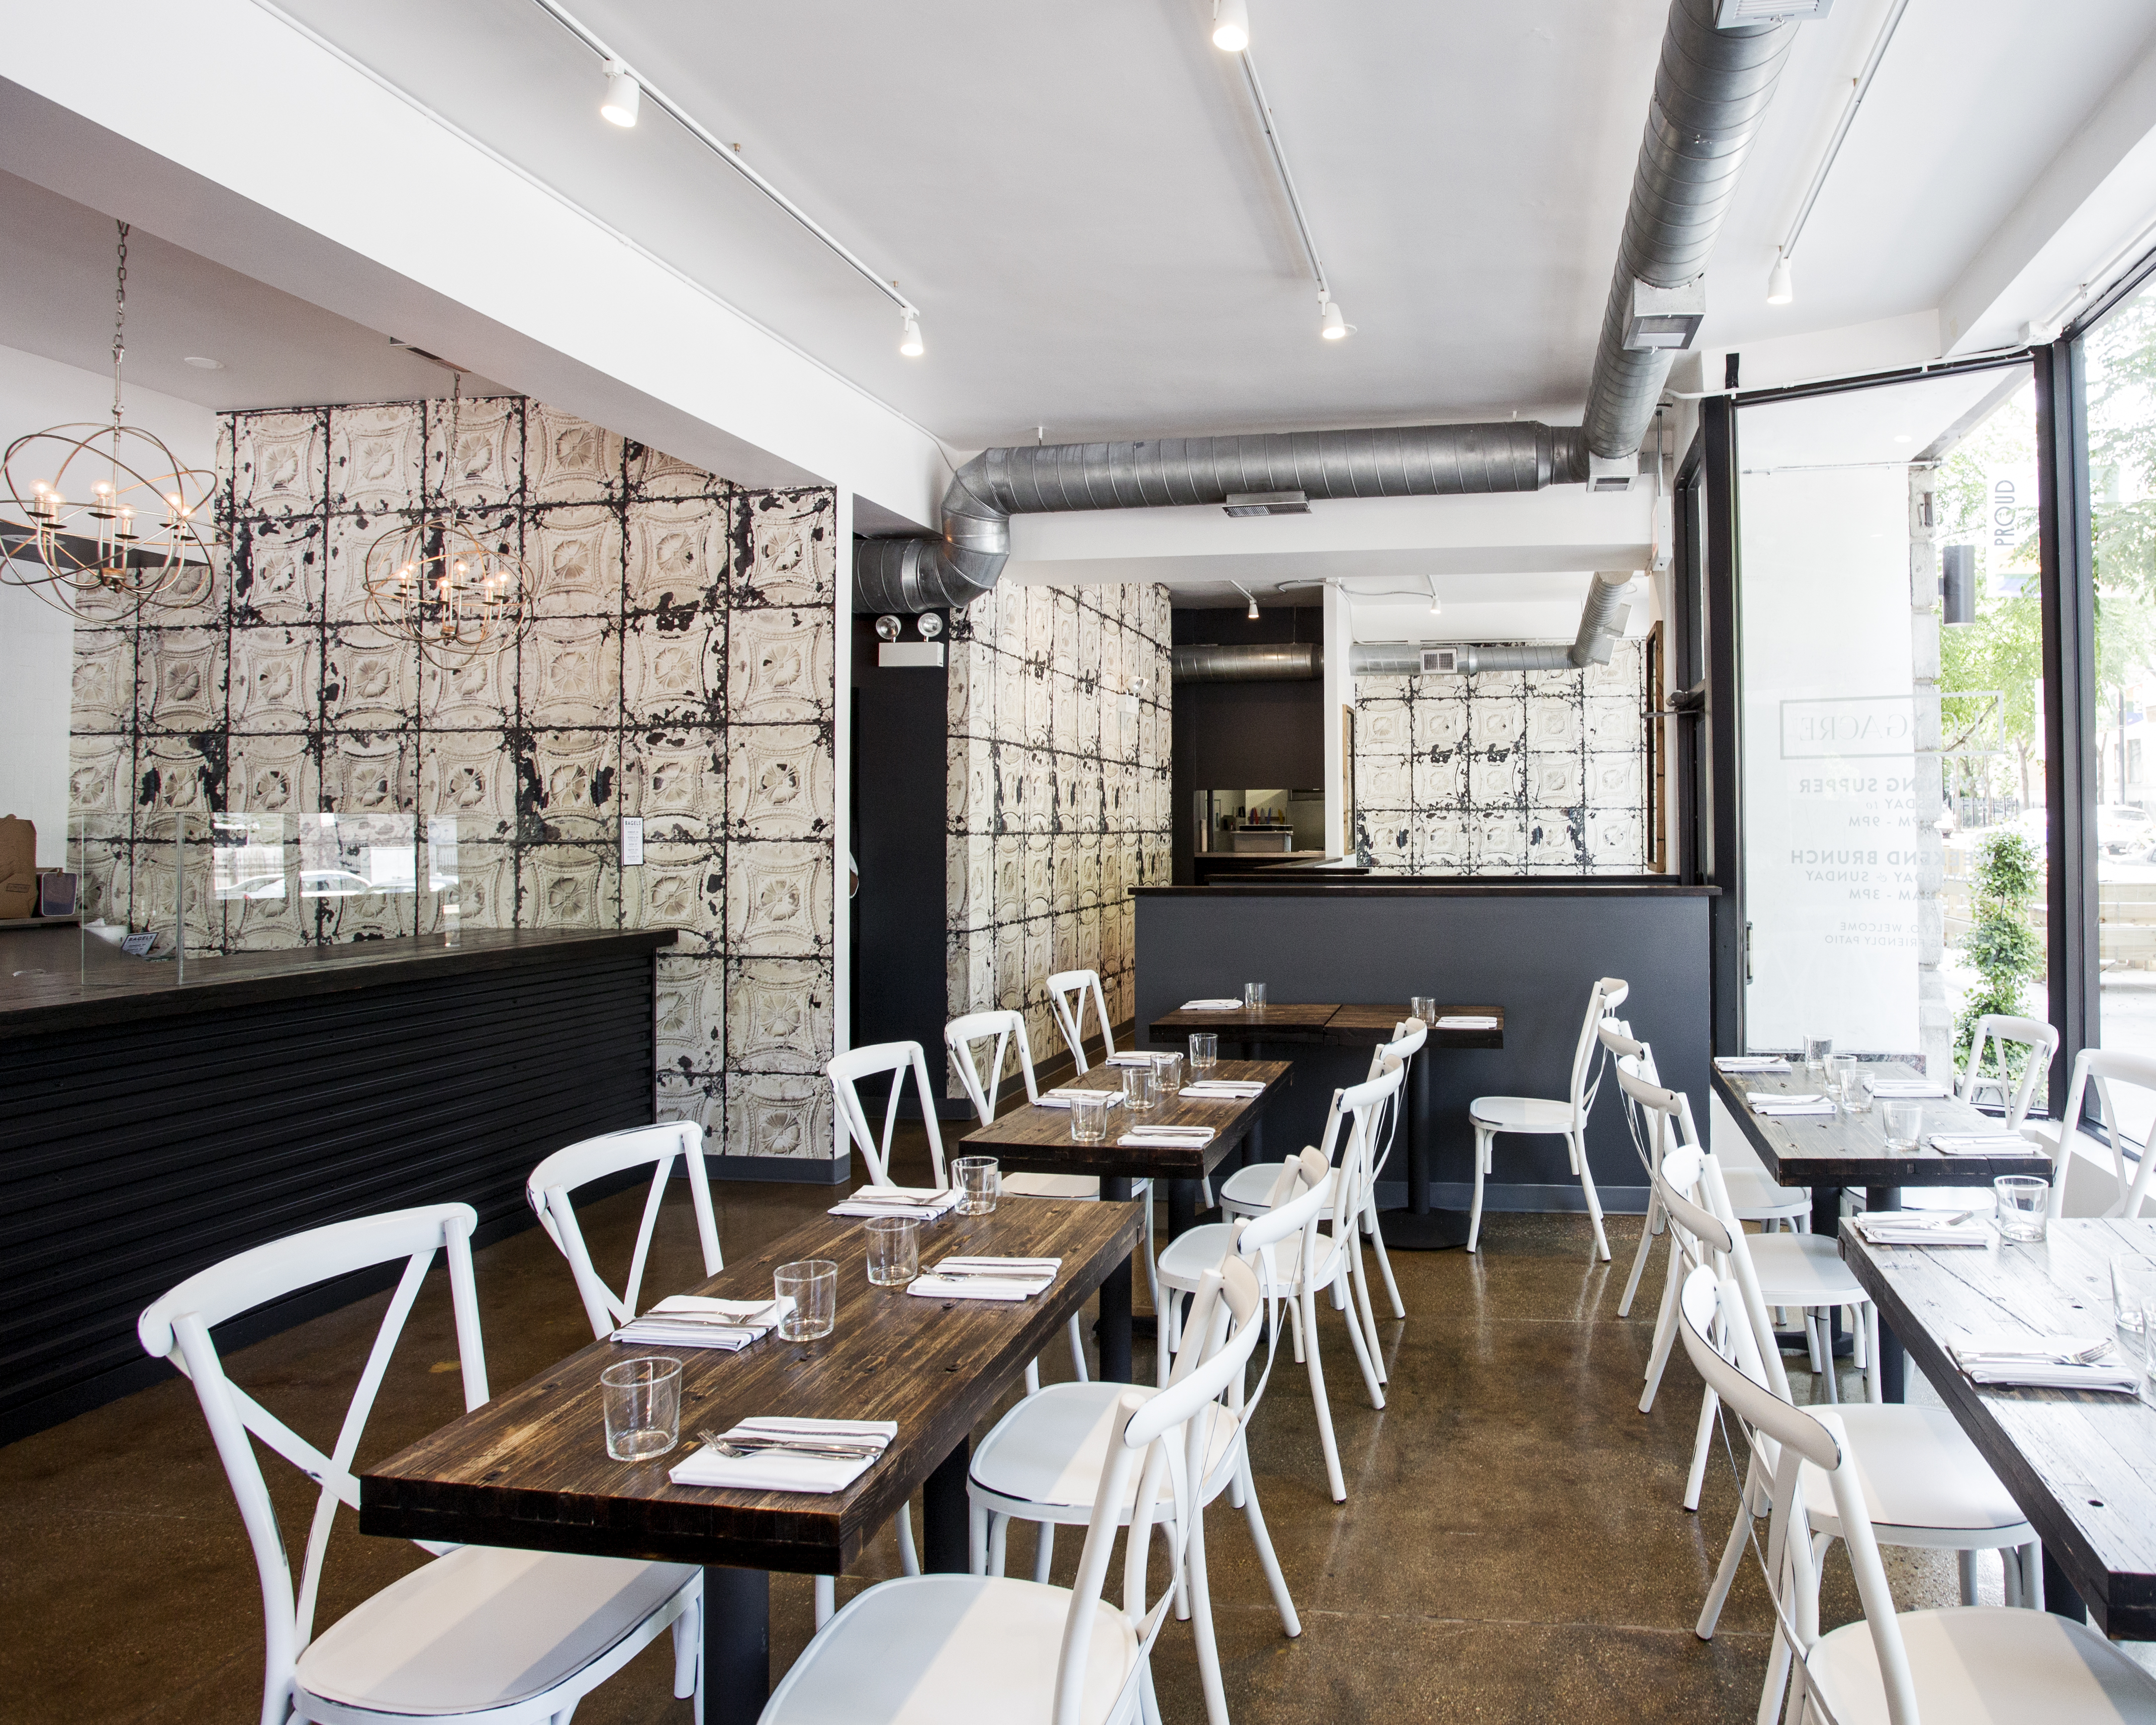 Longacre's dining room is whitewashed with wooden tables with white chairs, white wall tiles, and lots of light.